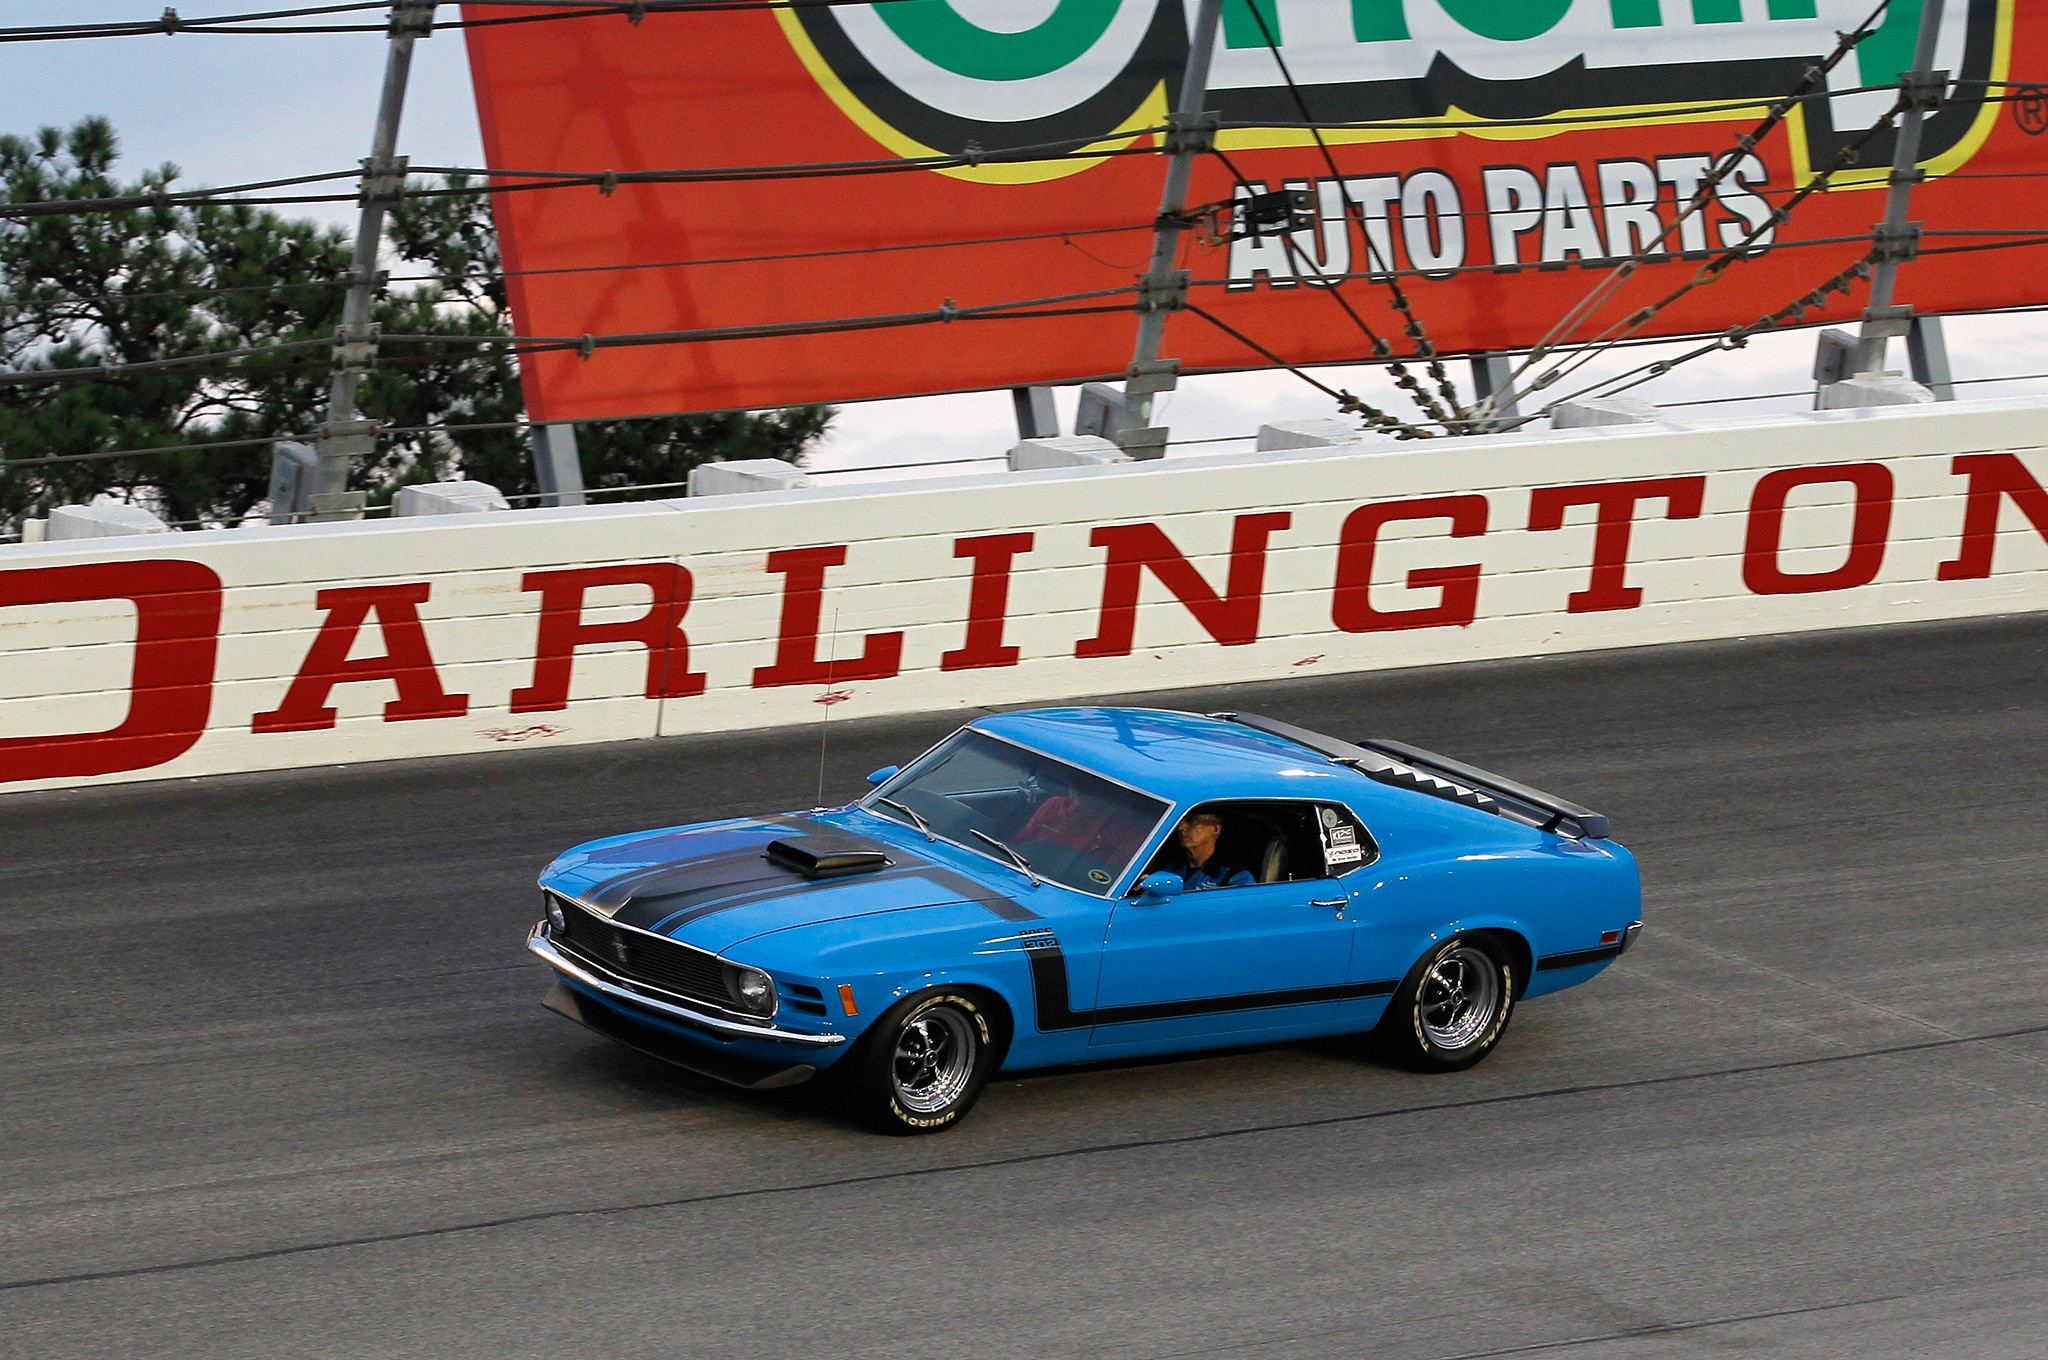 1b 1970 Ford Mustang Boss 302 Race Track